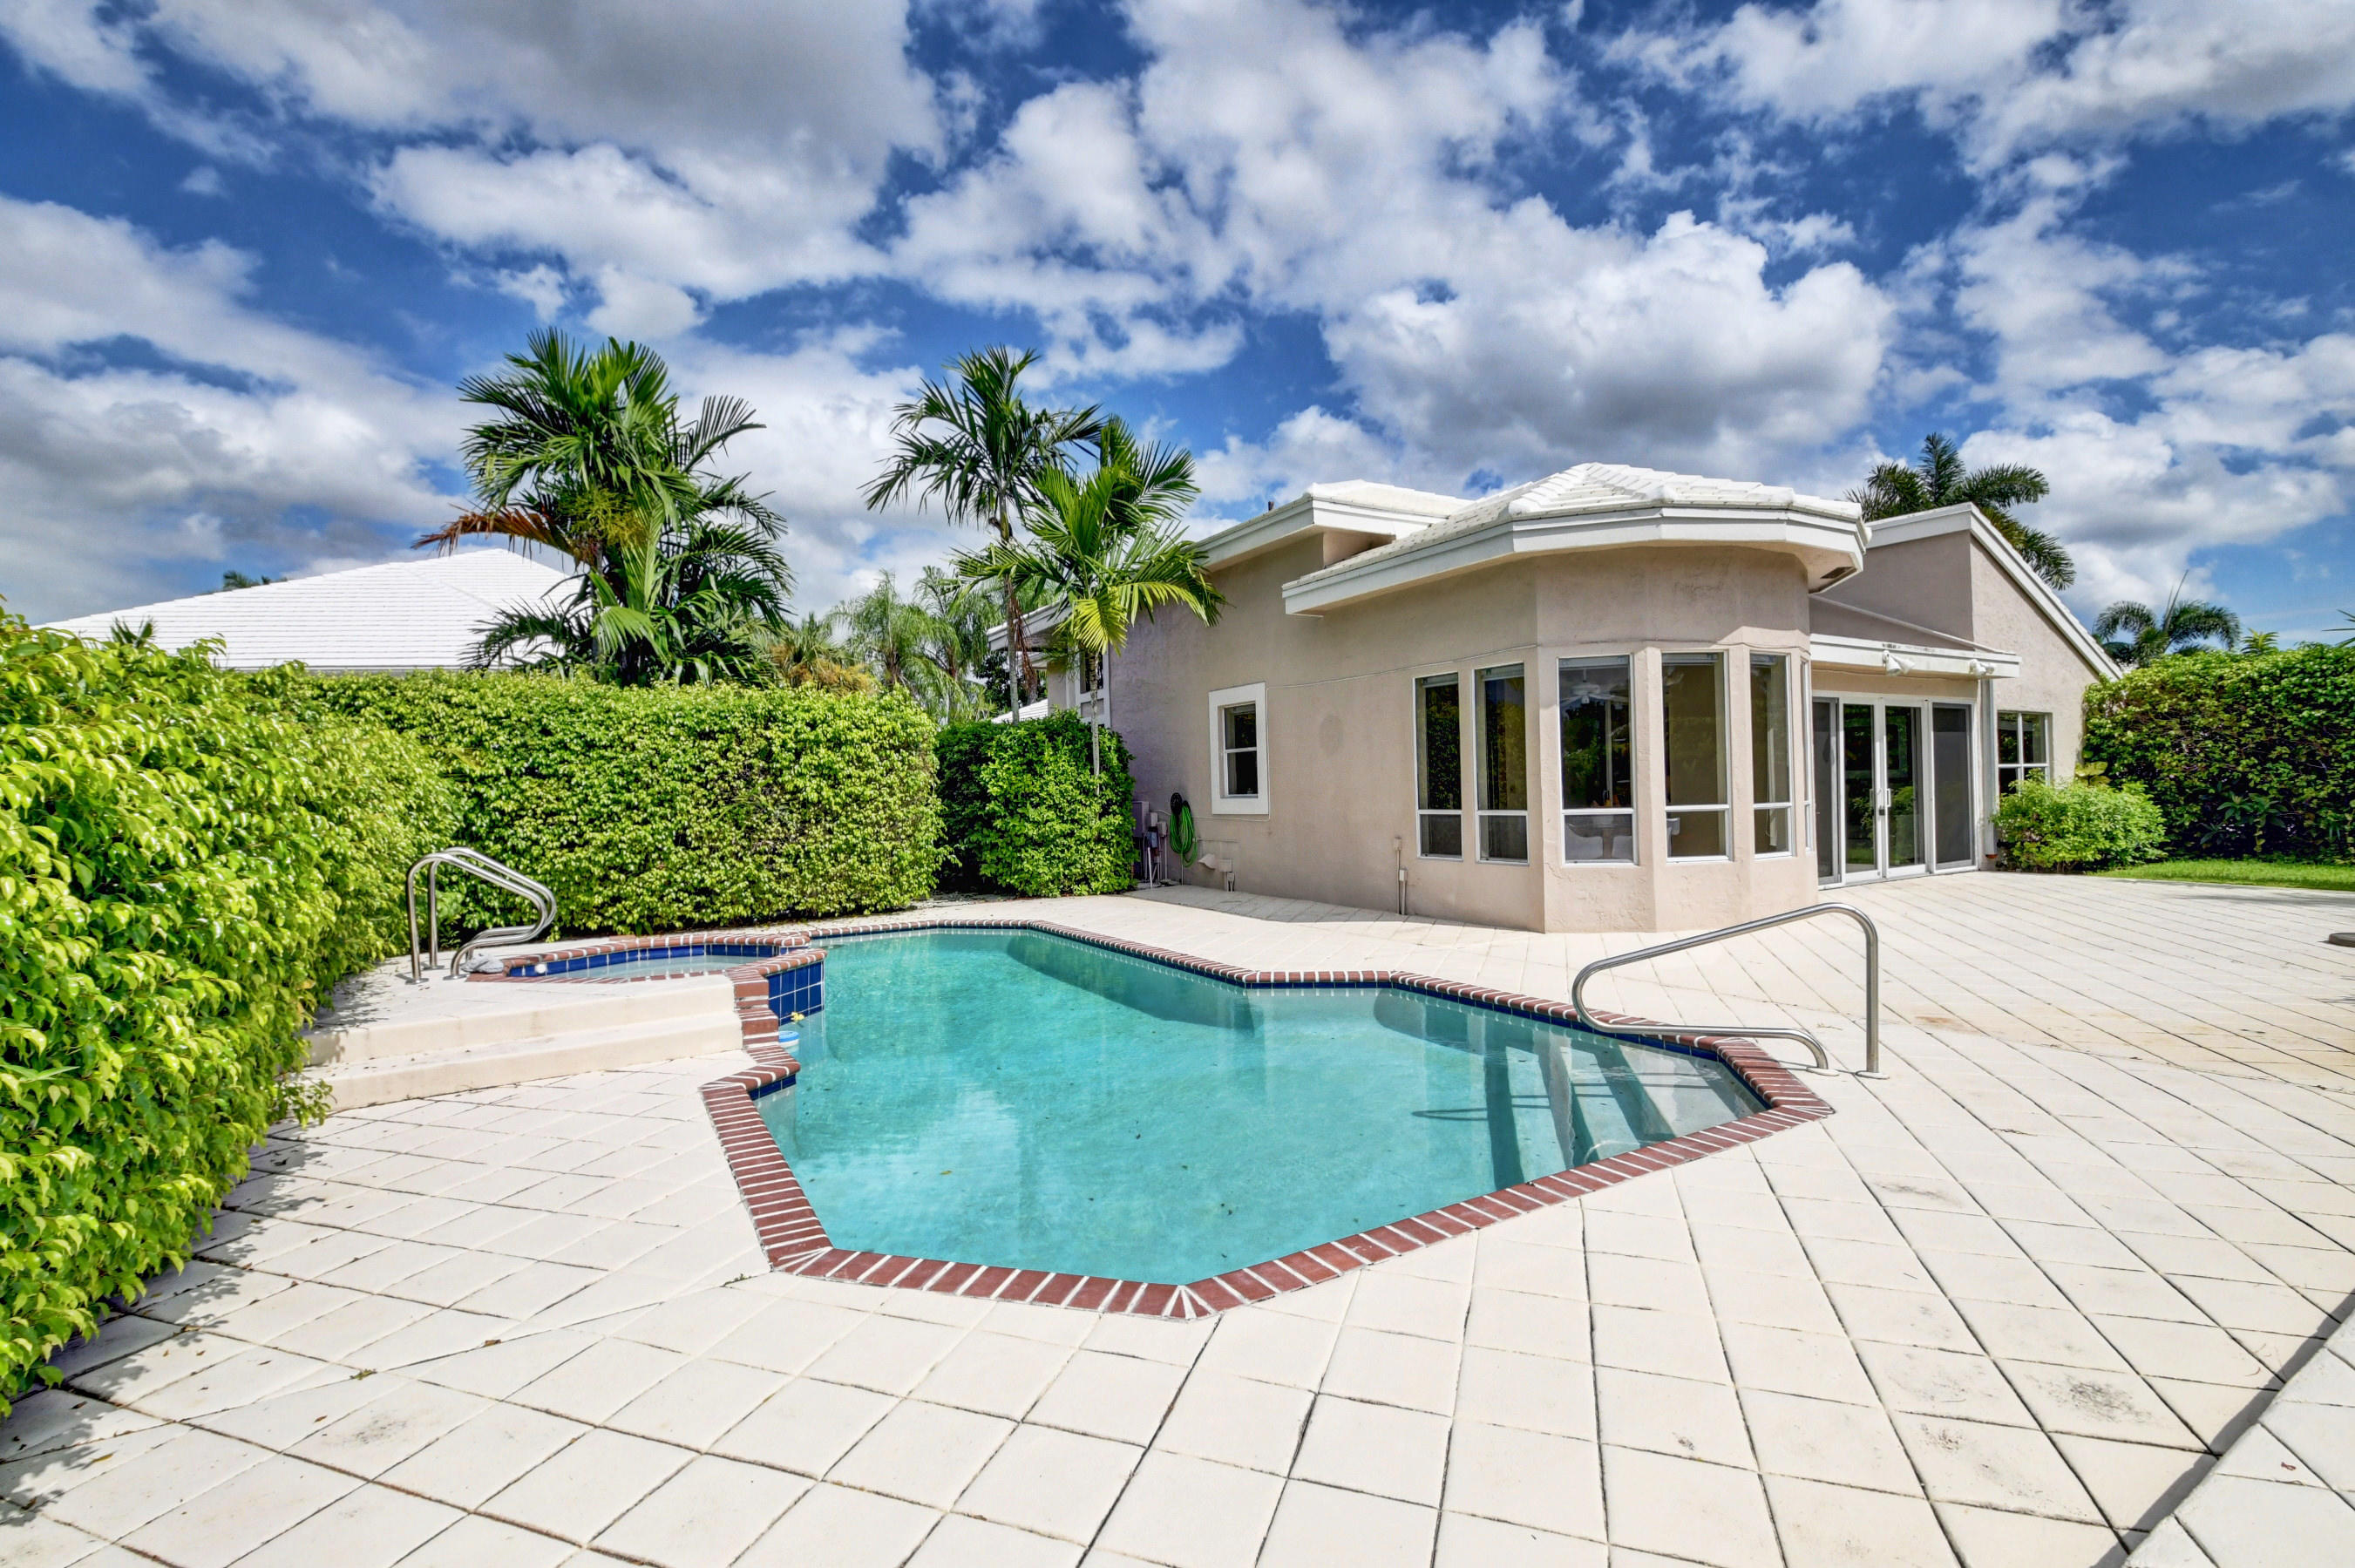 Photo of 17281 Huntington Park Way, Boca Raton, FL 33496